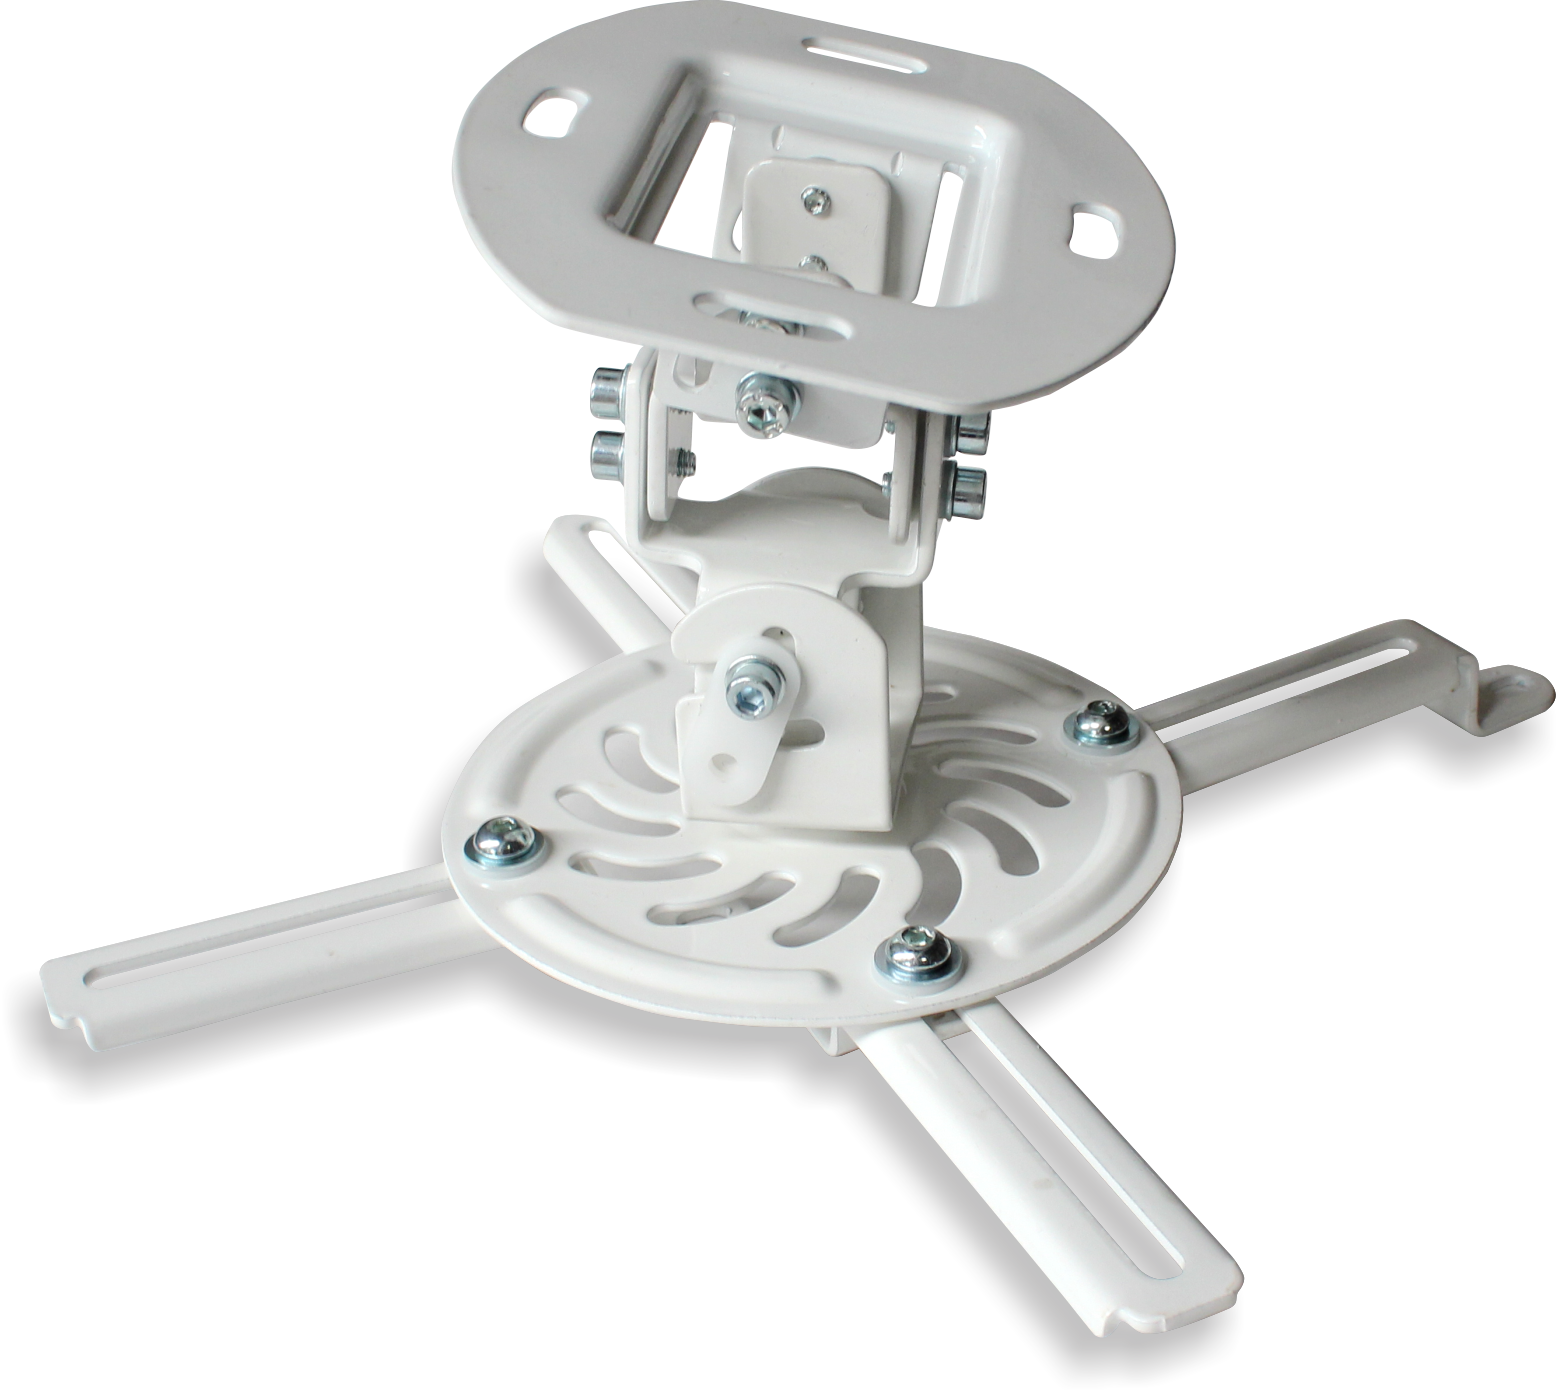 Parrot Projector Ceiling Mounting Bracket (52mm)